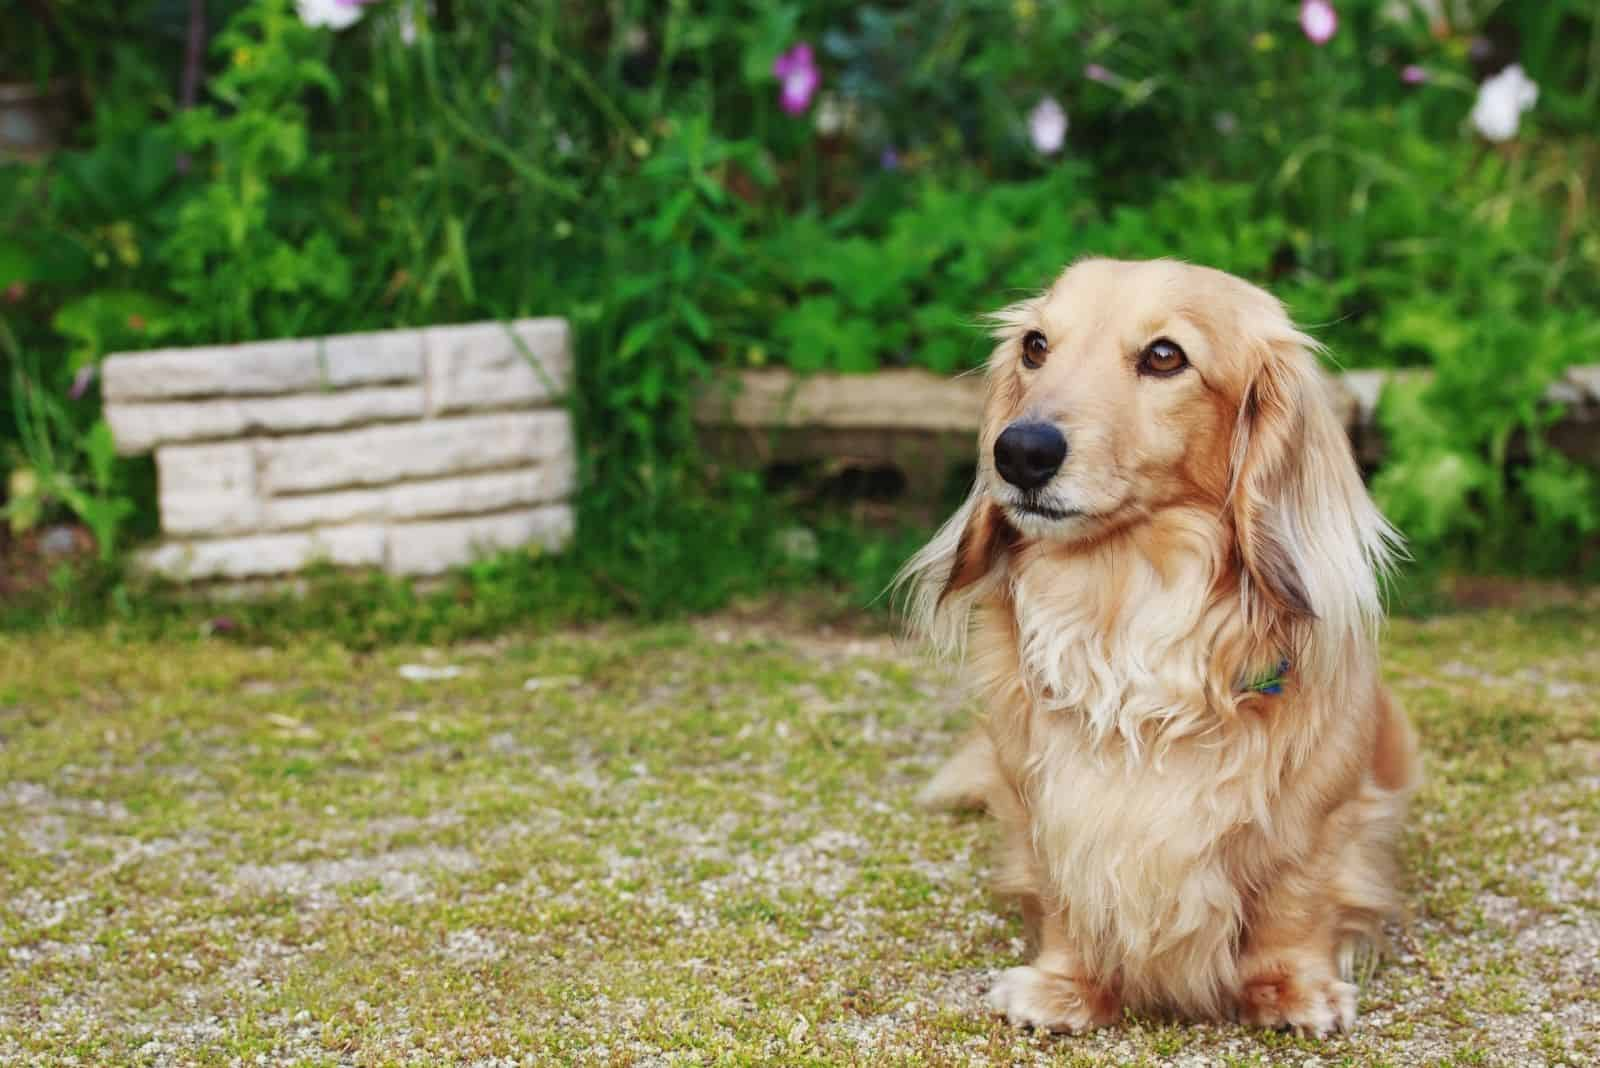 dachshund with long hair standing facing the camera